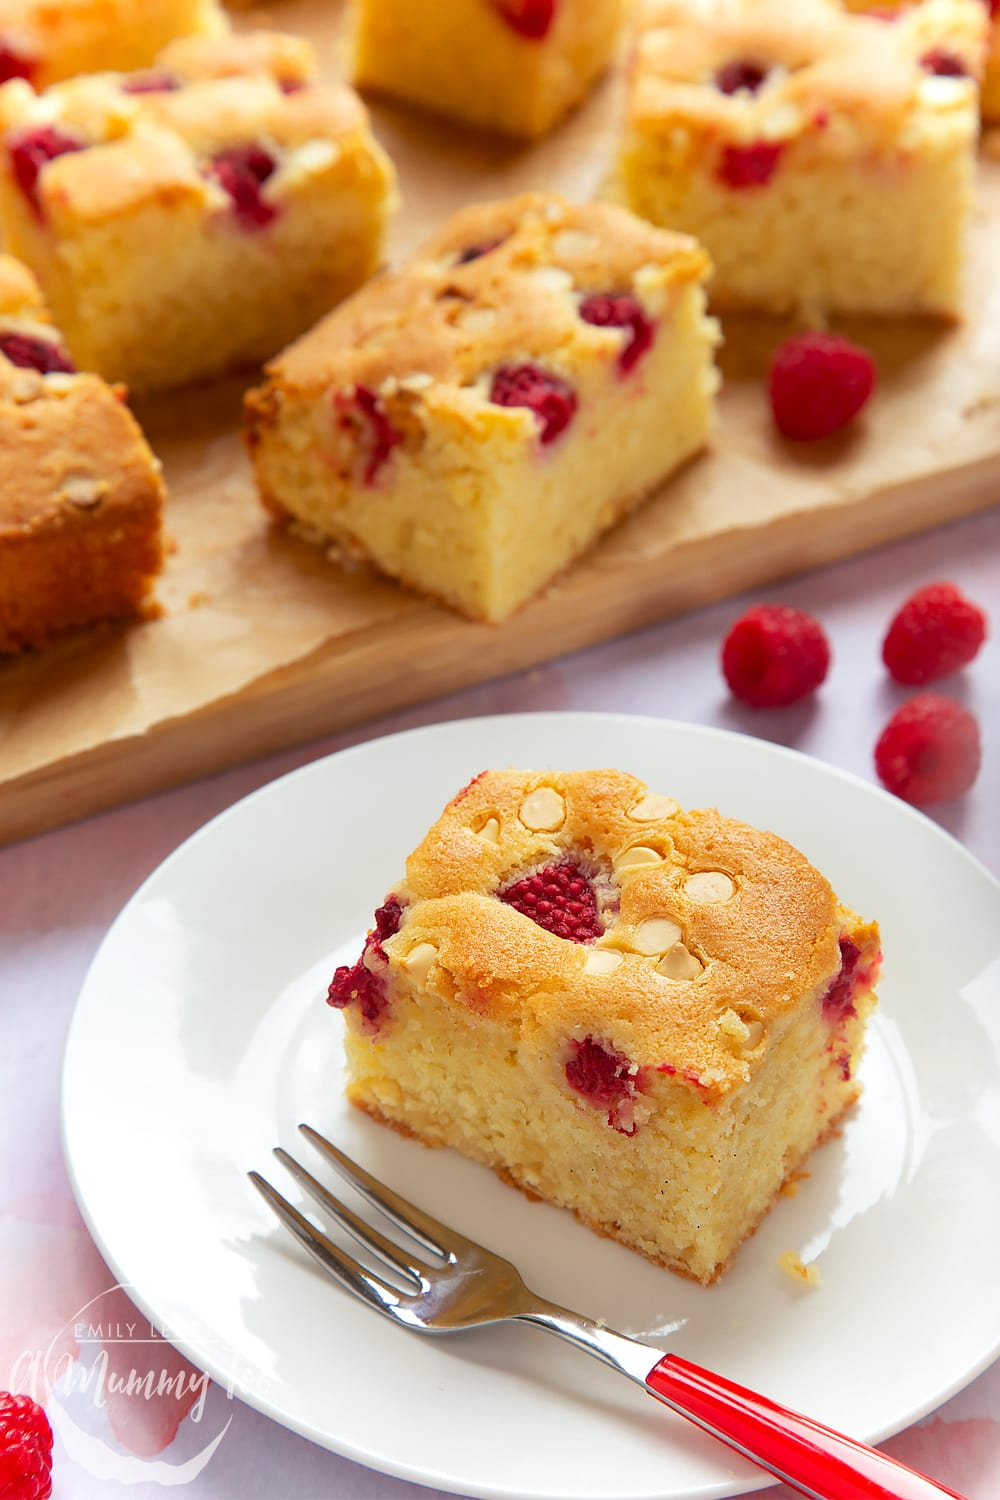 A serving of raspberry and white chocolate traybake on a plate with a fork.